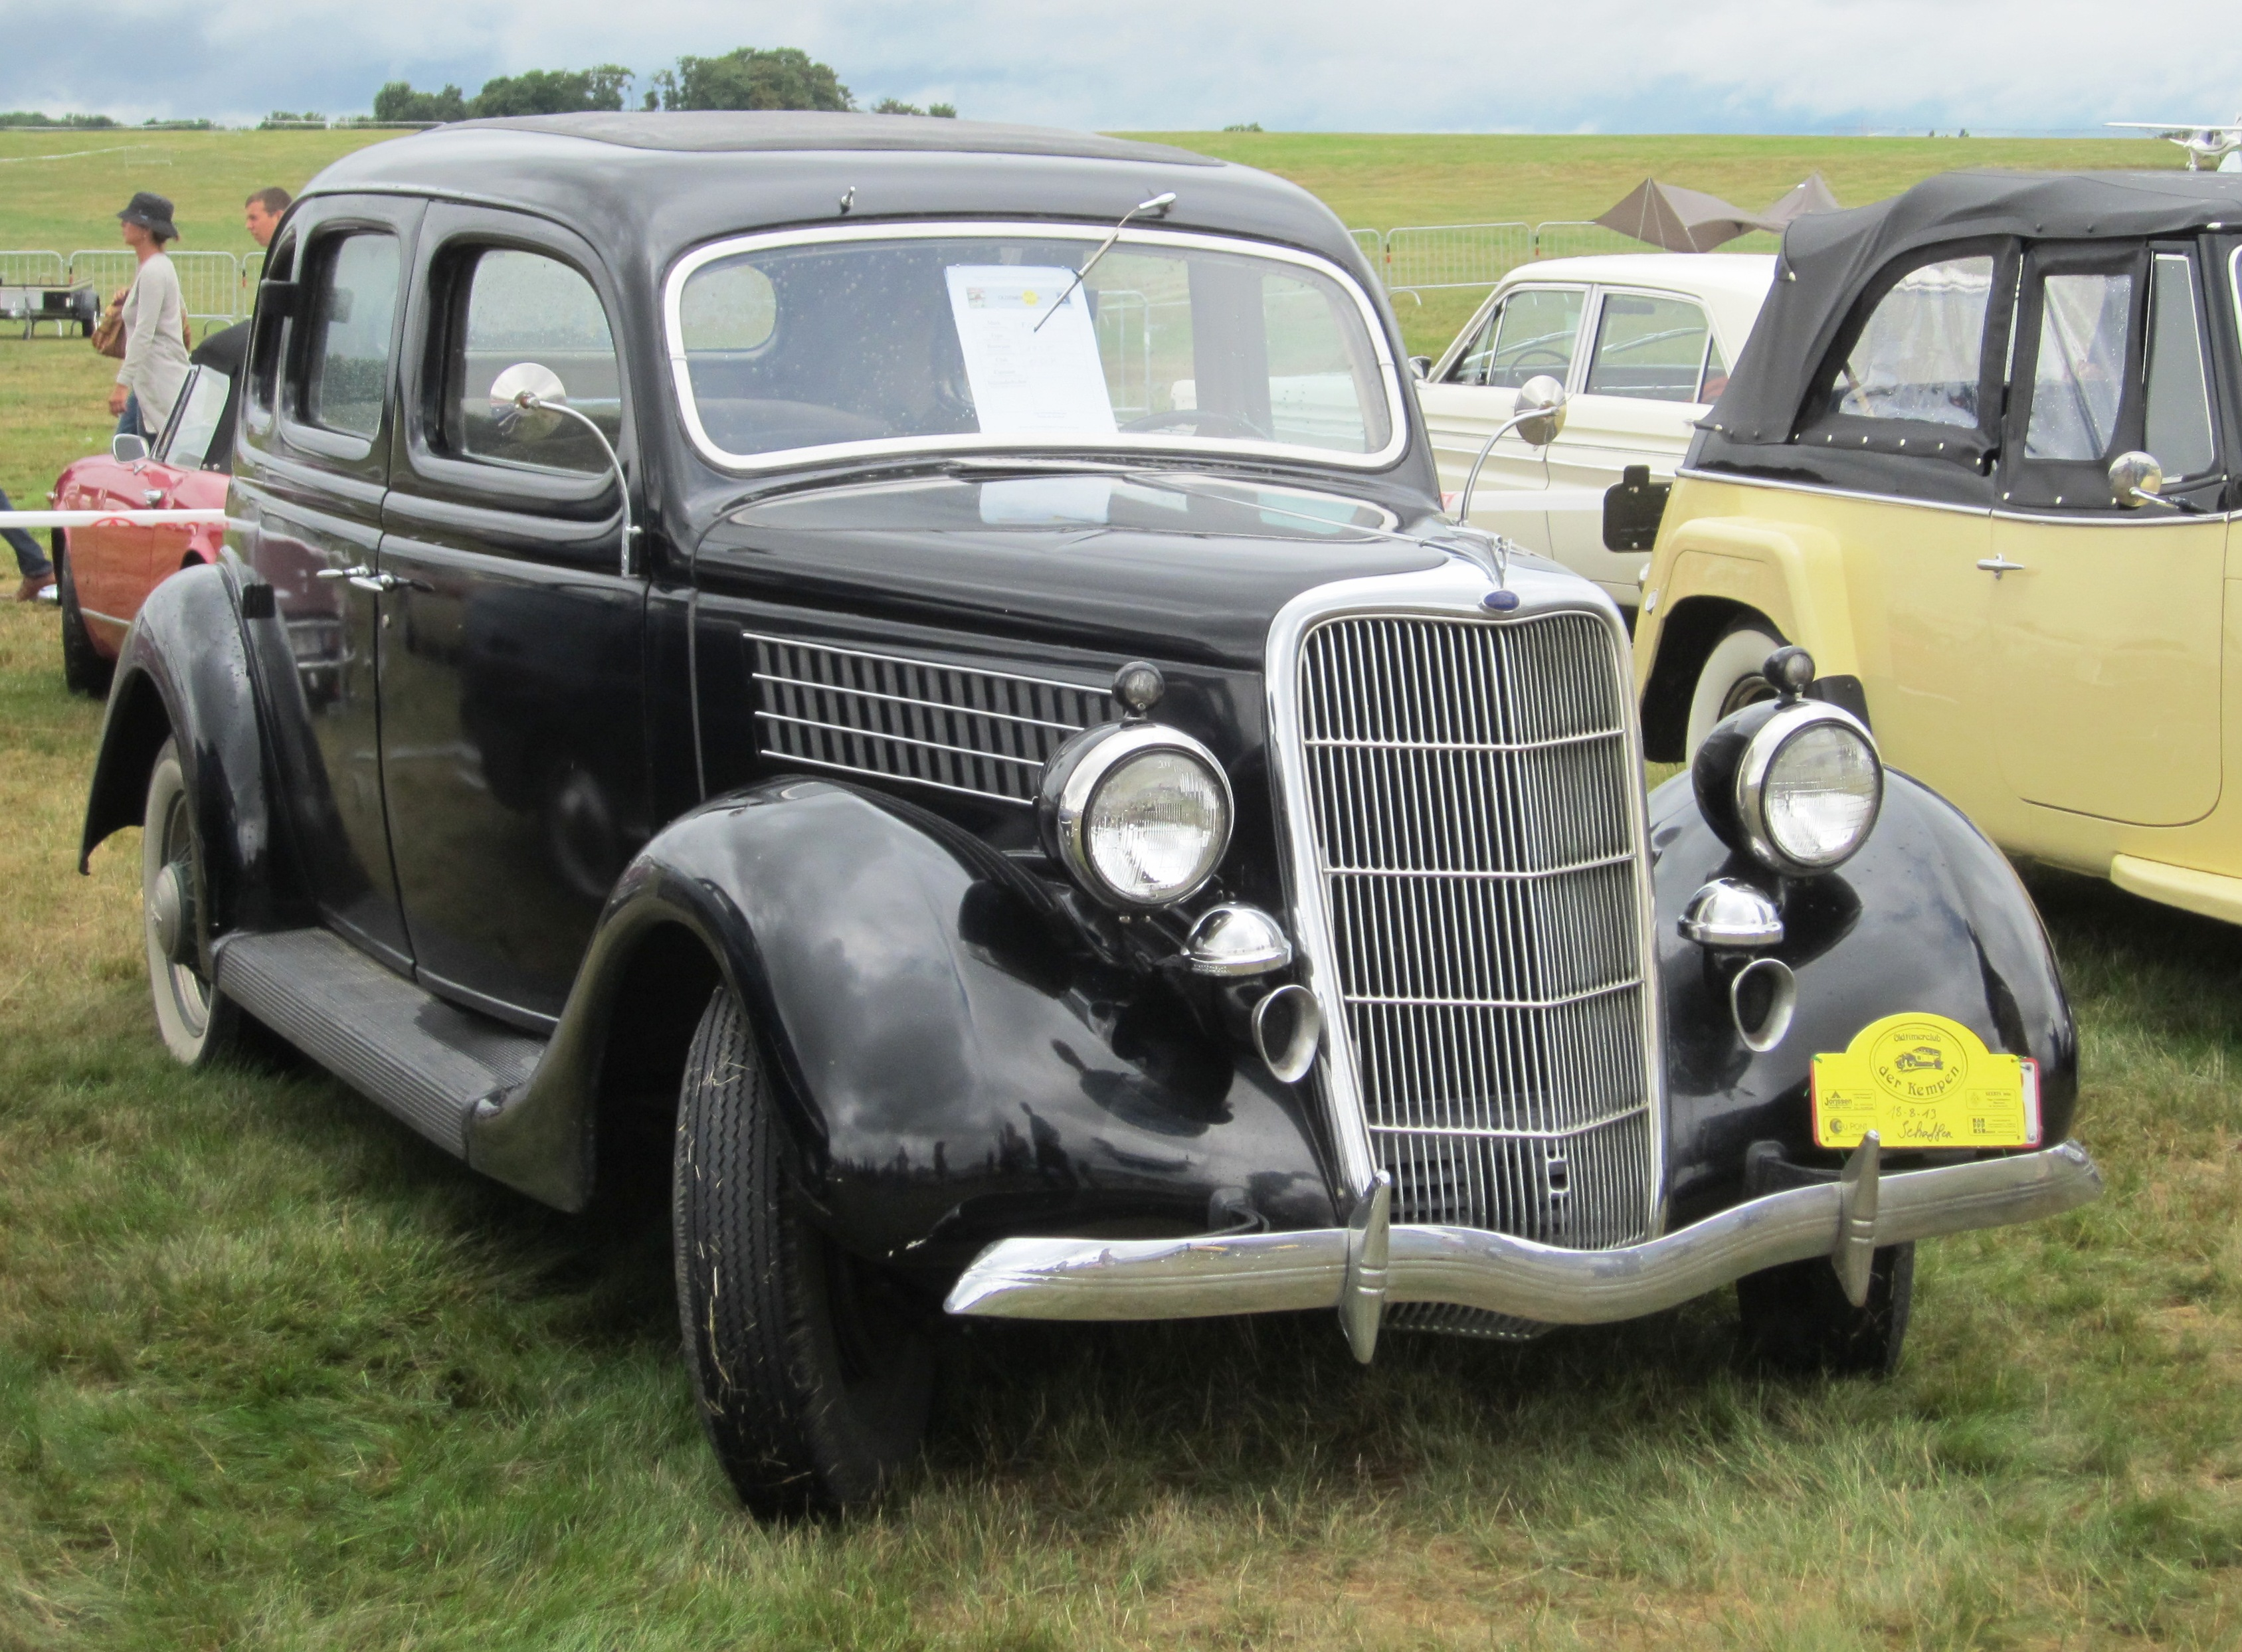 Fileford v8 1935 model v8 48 3620cc from before the end of 1936